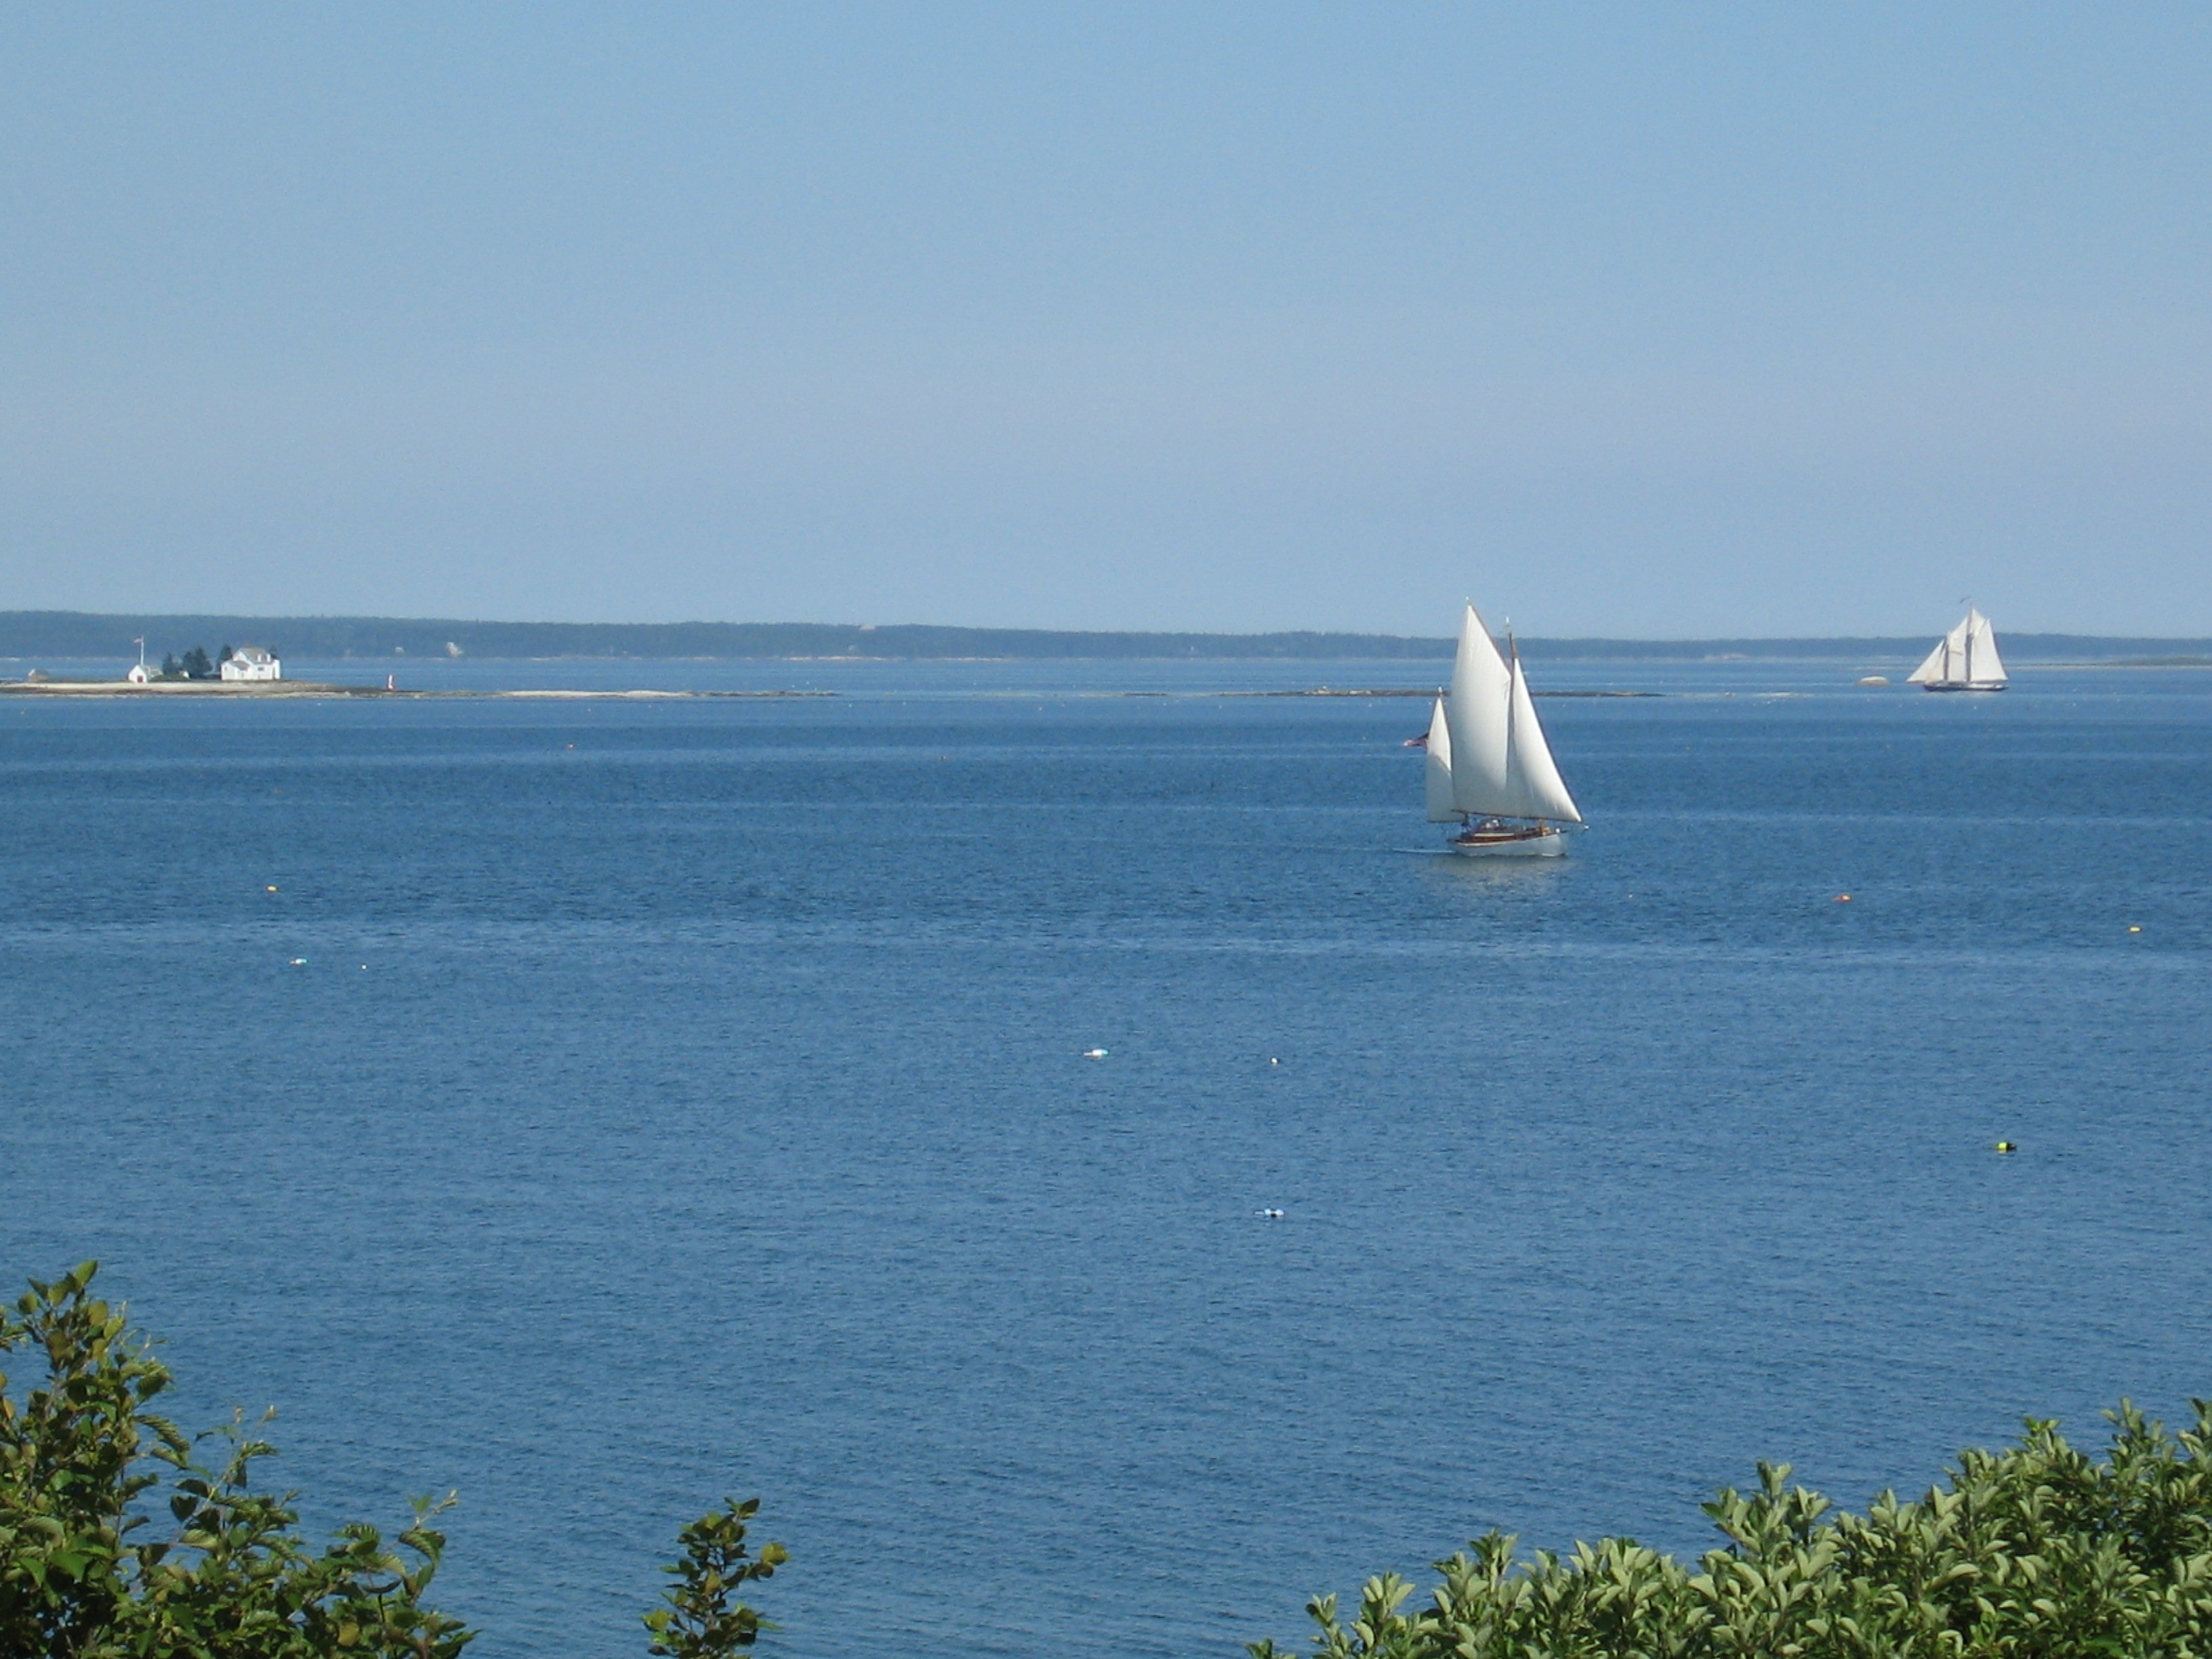 sailboat in the bay in front of the cottage